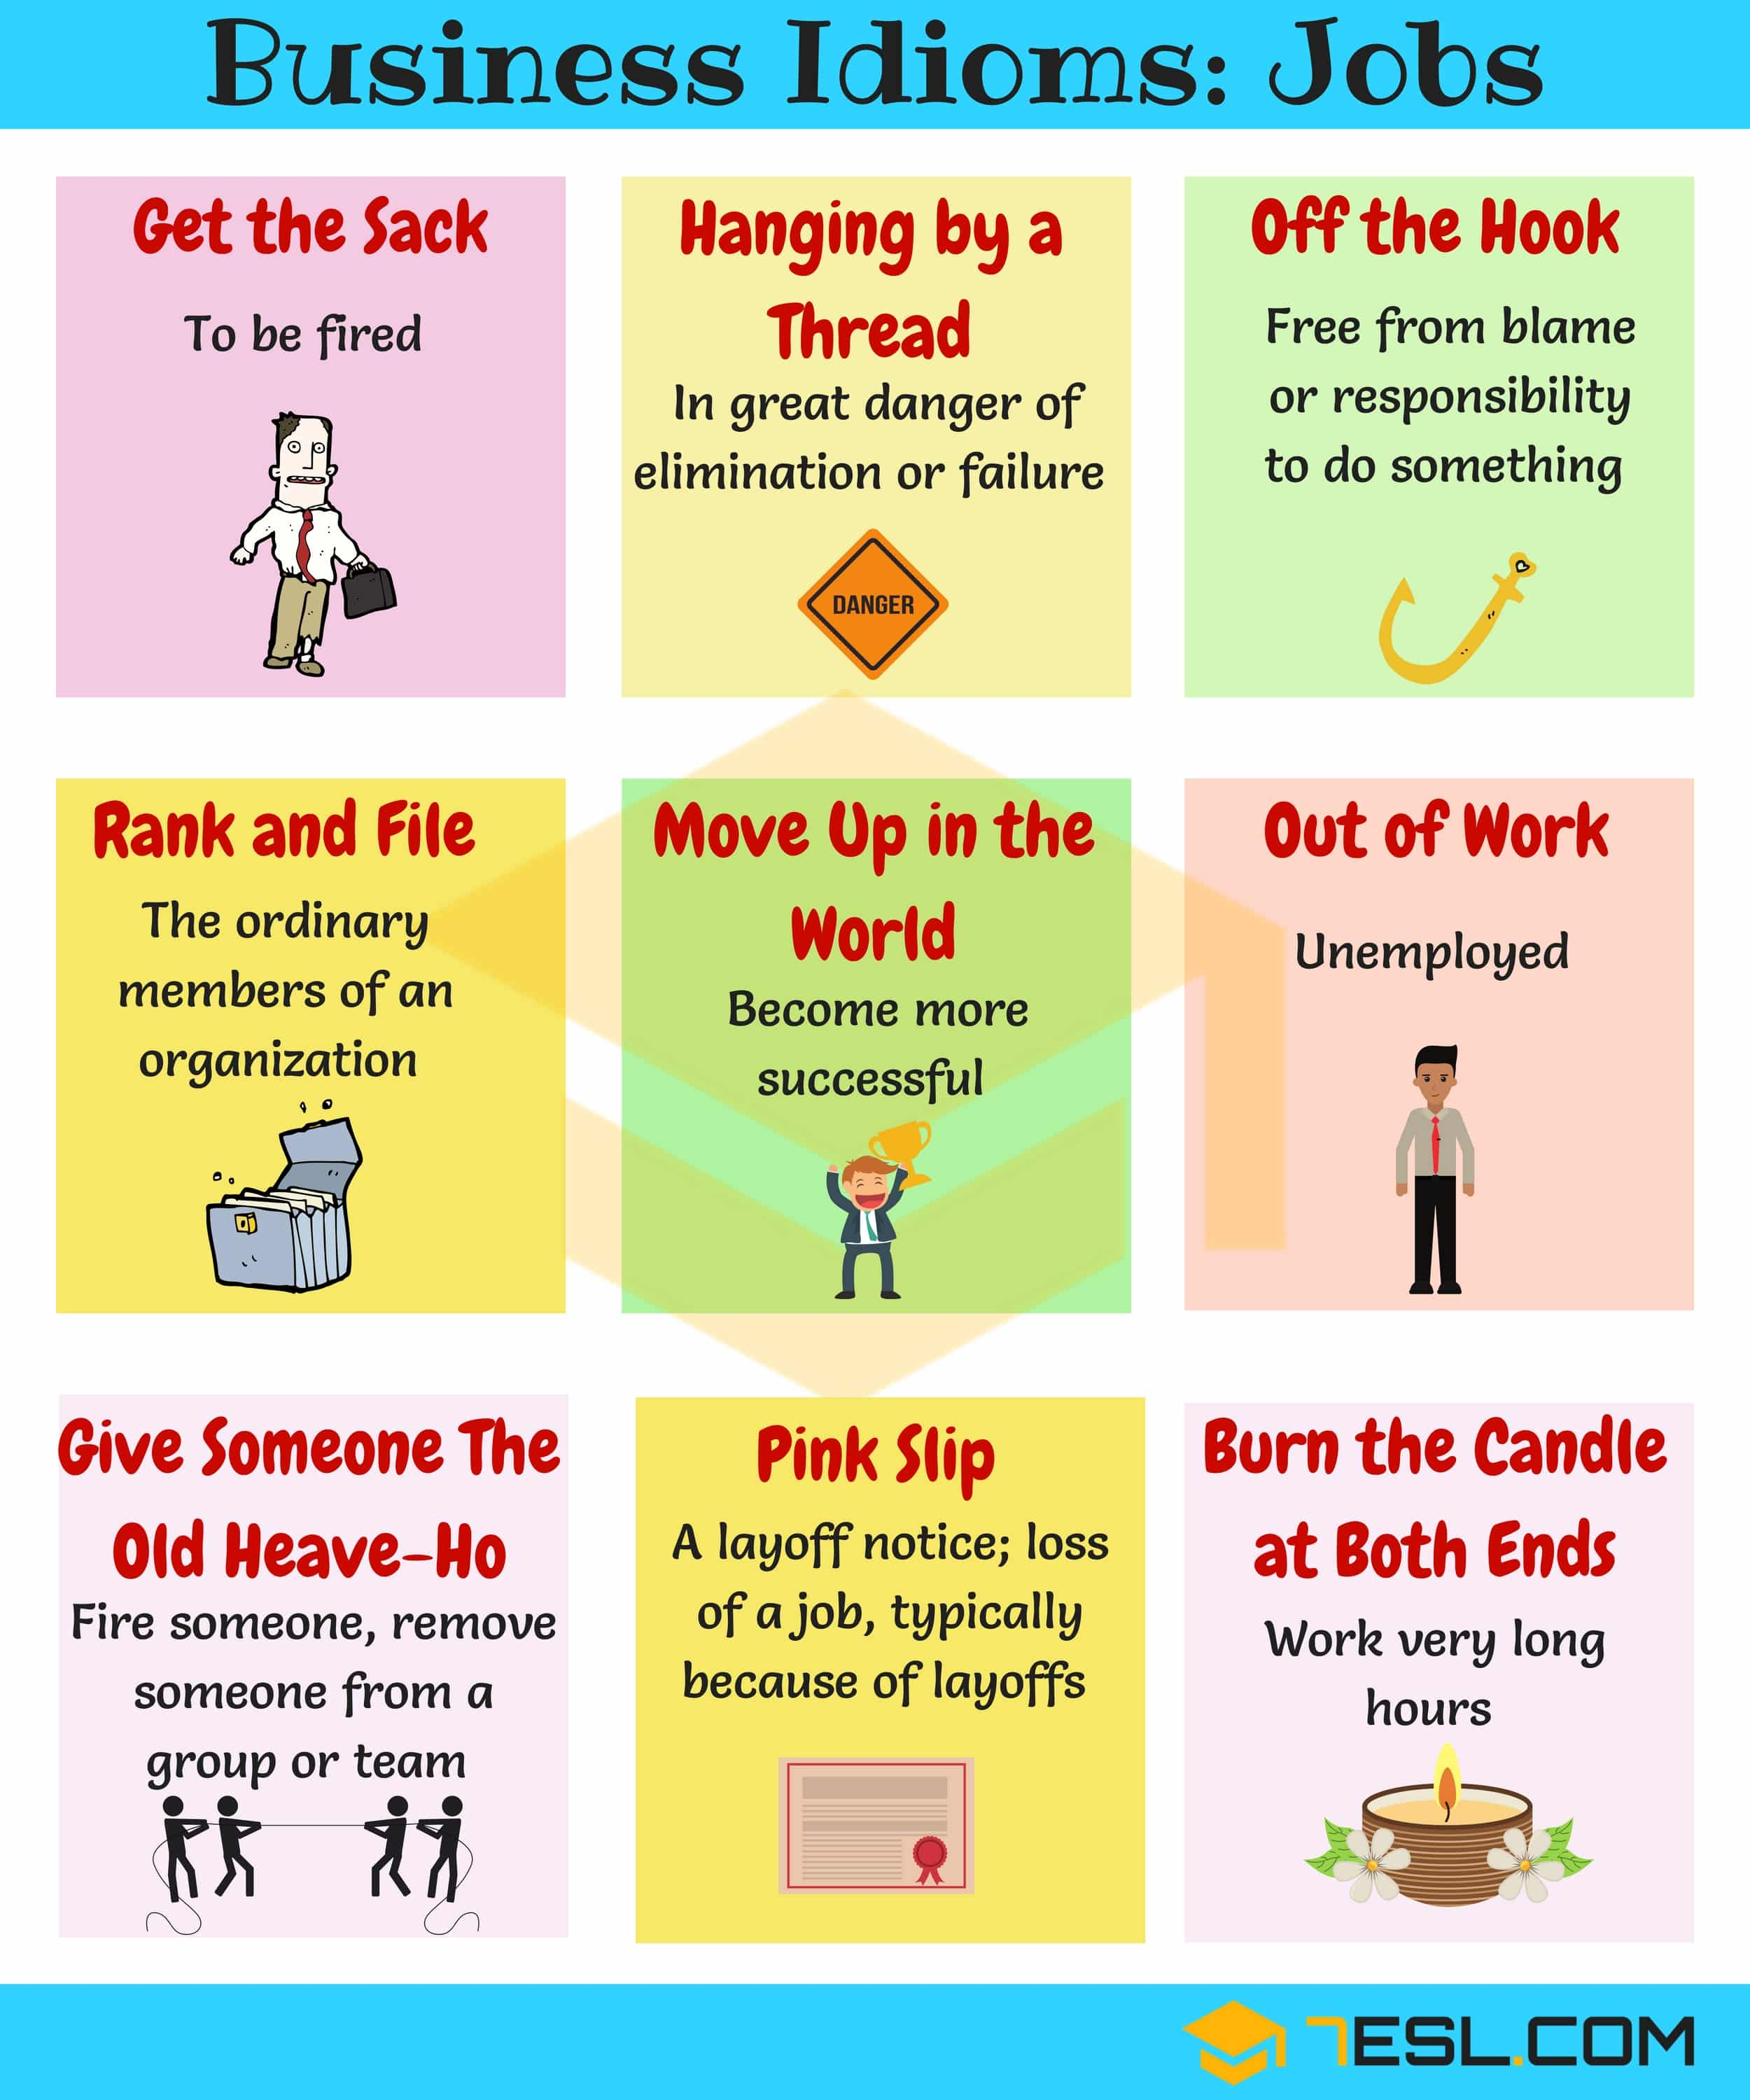 Job Idioms 10 Useful Idioms Amp Sayings About Jobs 7esl